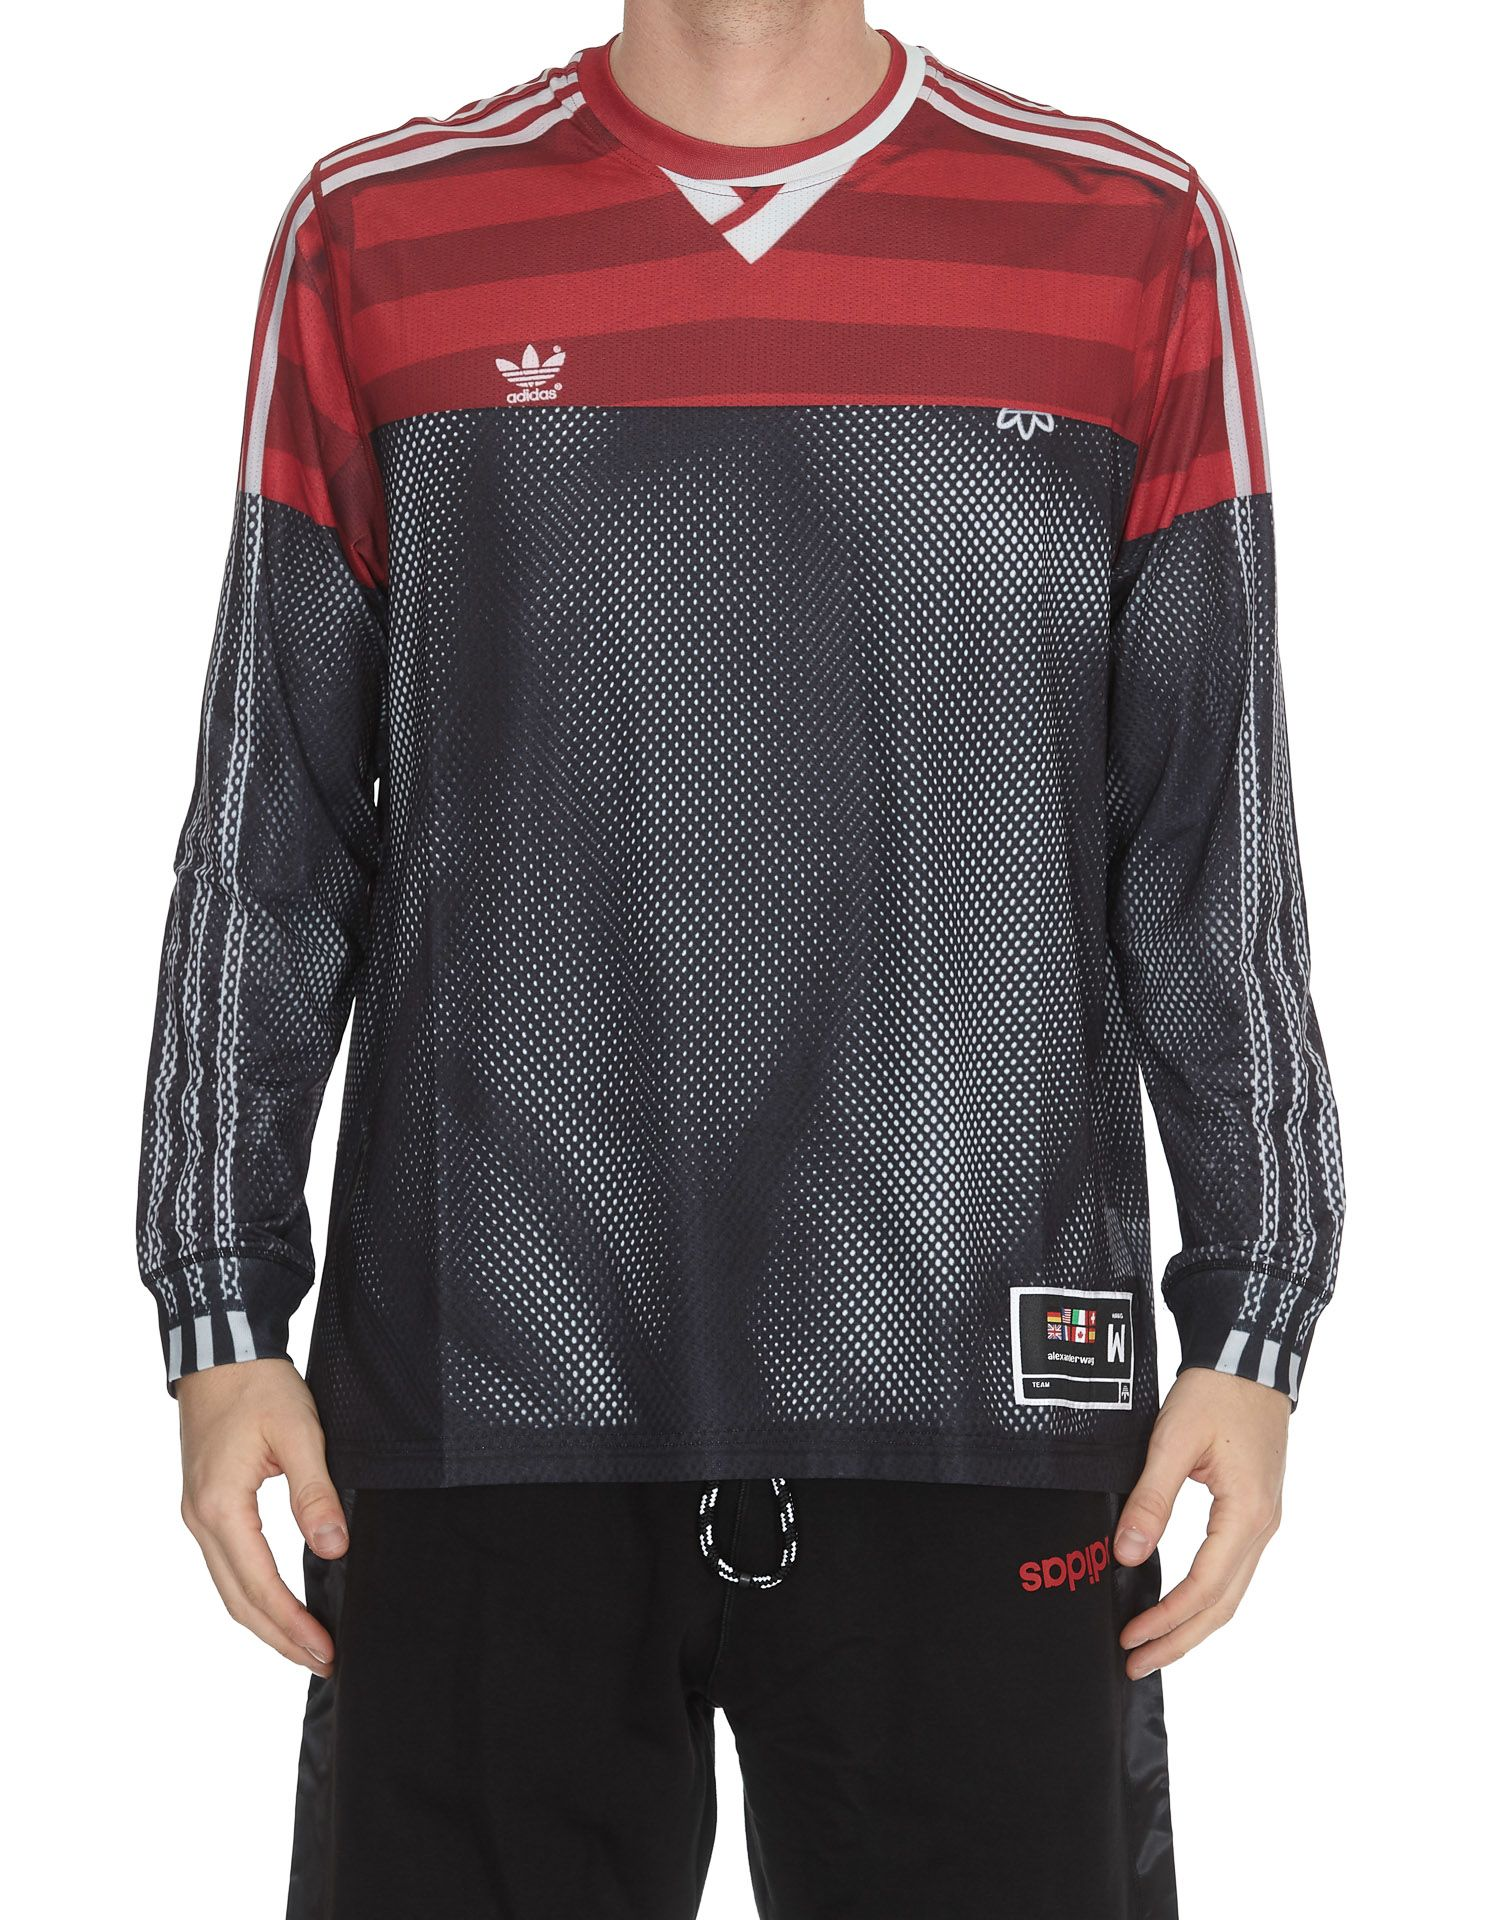 cc1e195bab45 Adidas Originals by Alexander Wang Photocopy Long Sleeves T-shirt -  Multicolor ...